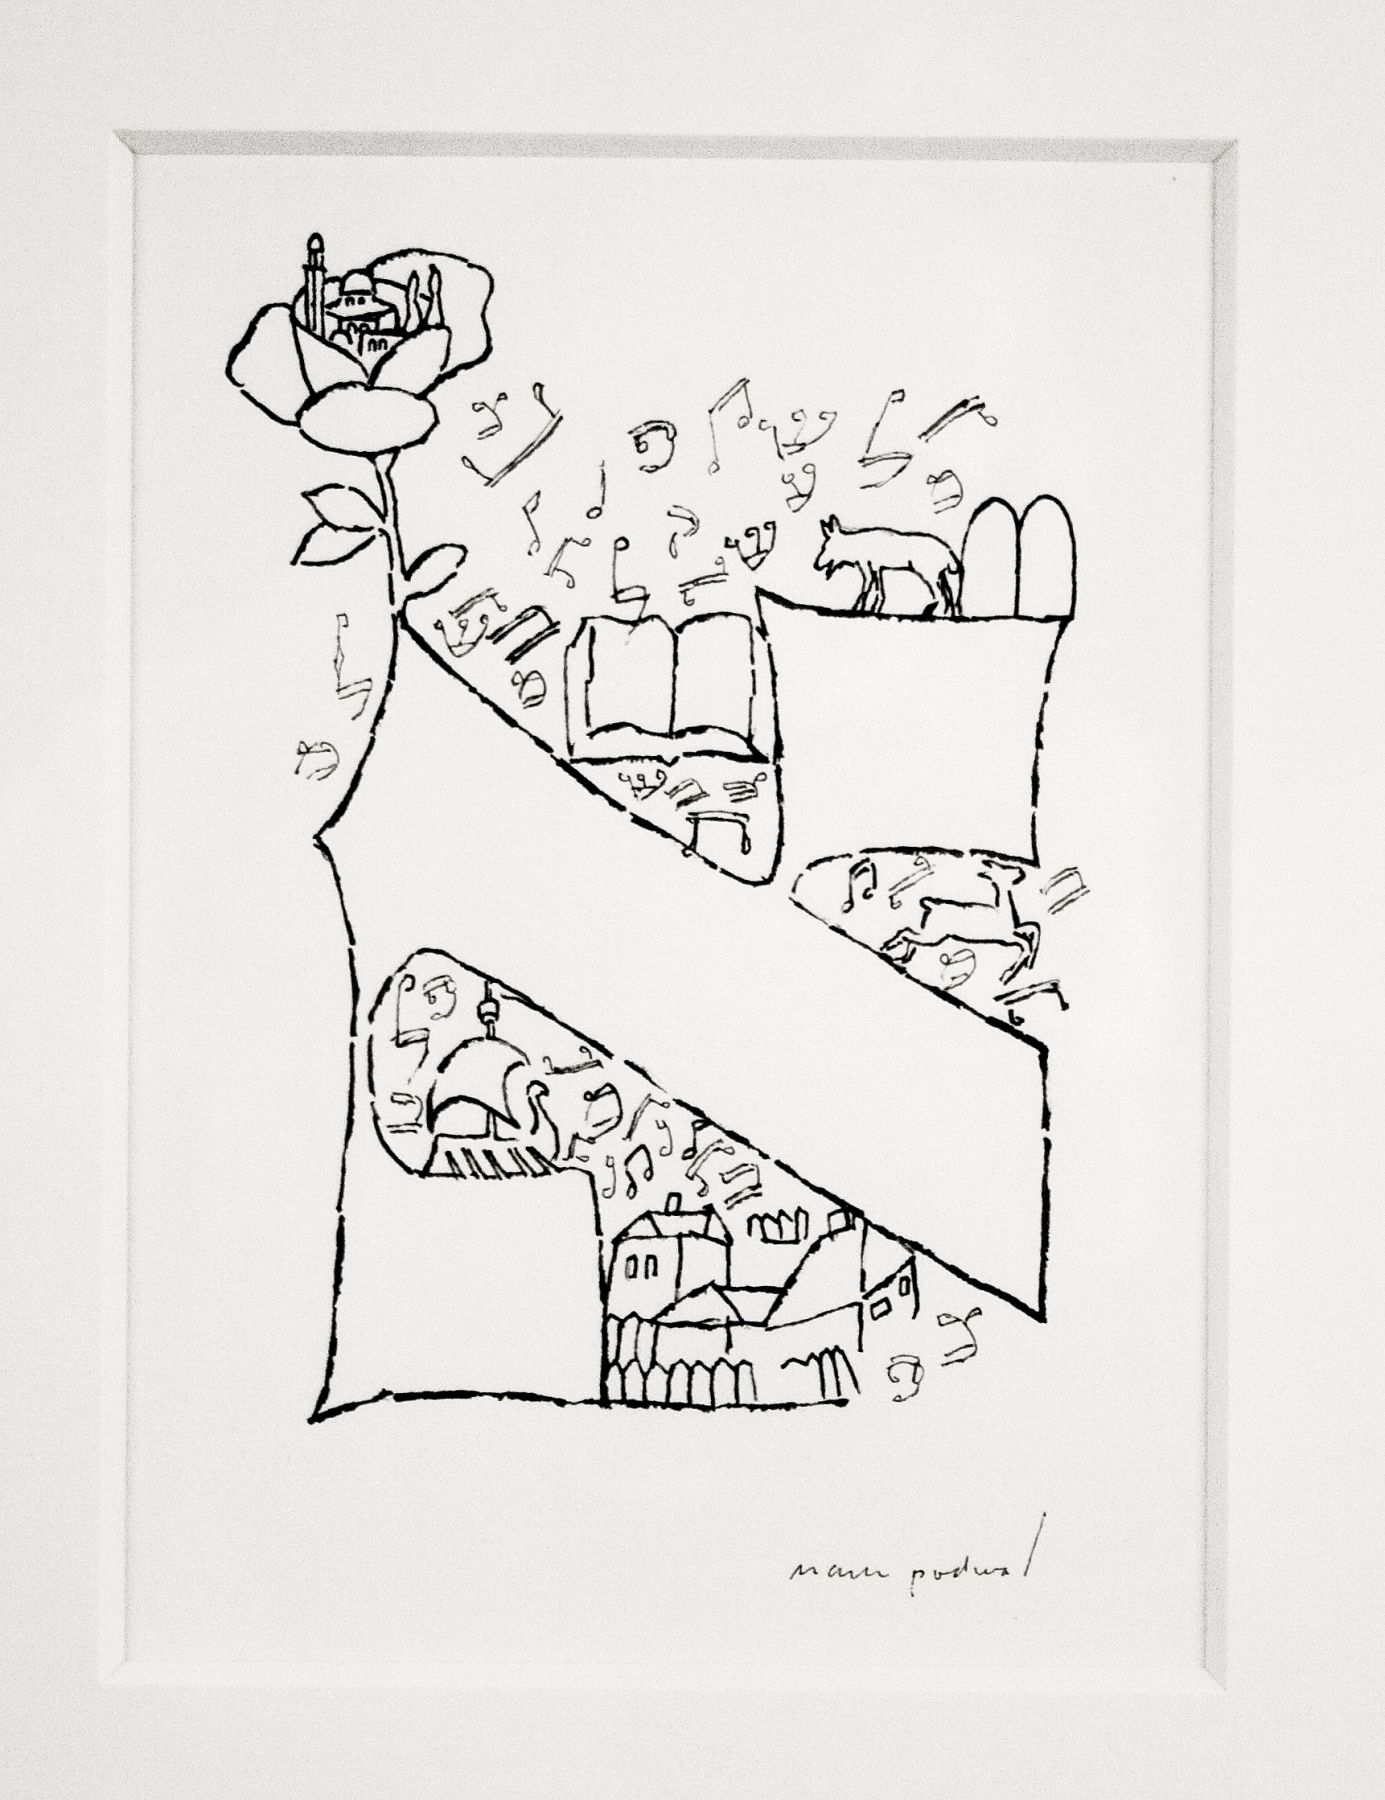 mark podwal, Who Knows One? (from Elie Wiesel, A Passover Haggadah), 1991, ink on paper, 5 1/2 x 4 inches